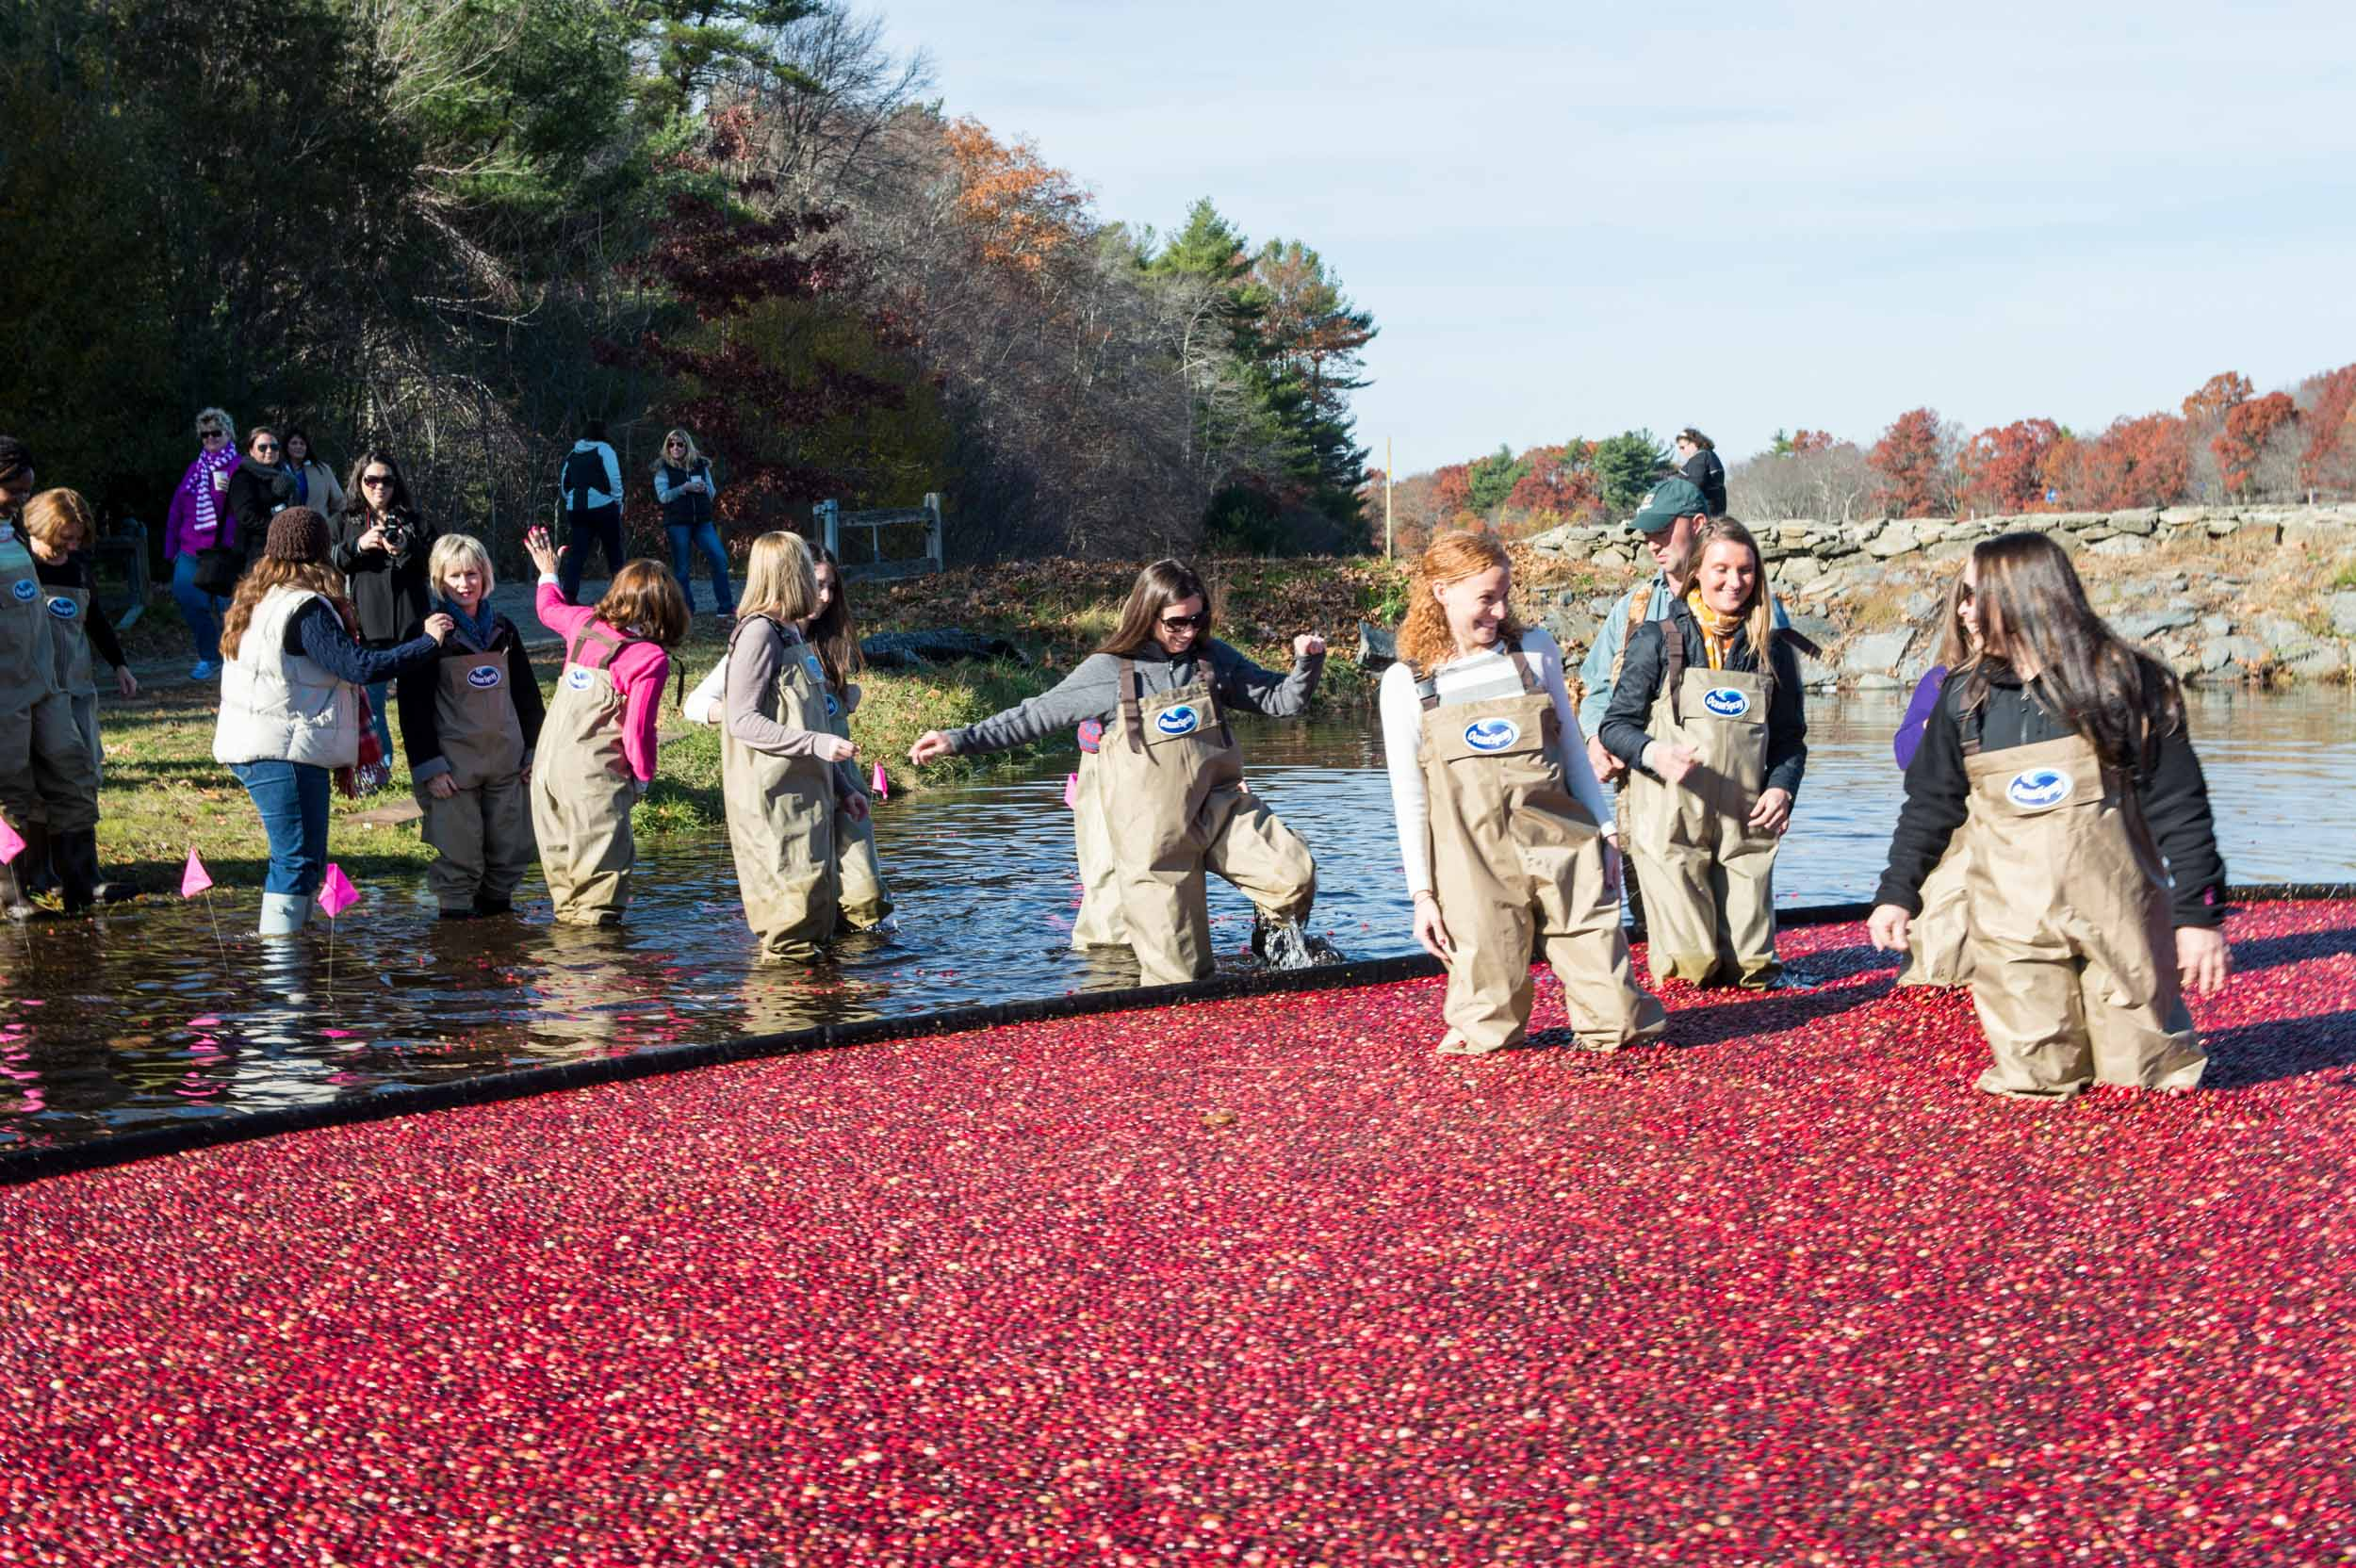 Maura Wayman Photography, Photography, Corporate Photography,Massachusetts, Boston, Metro West, events, Corporate events, Photographer, Functions, Parties, Fundraisers, Ocean Spray, Bogs, cranberries, cranberry, waders, walking in a bog, Corproate Team building, fruit, red, harvest, boom, water,